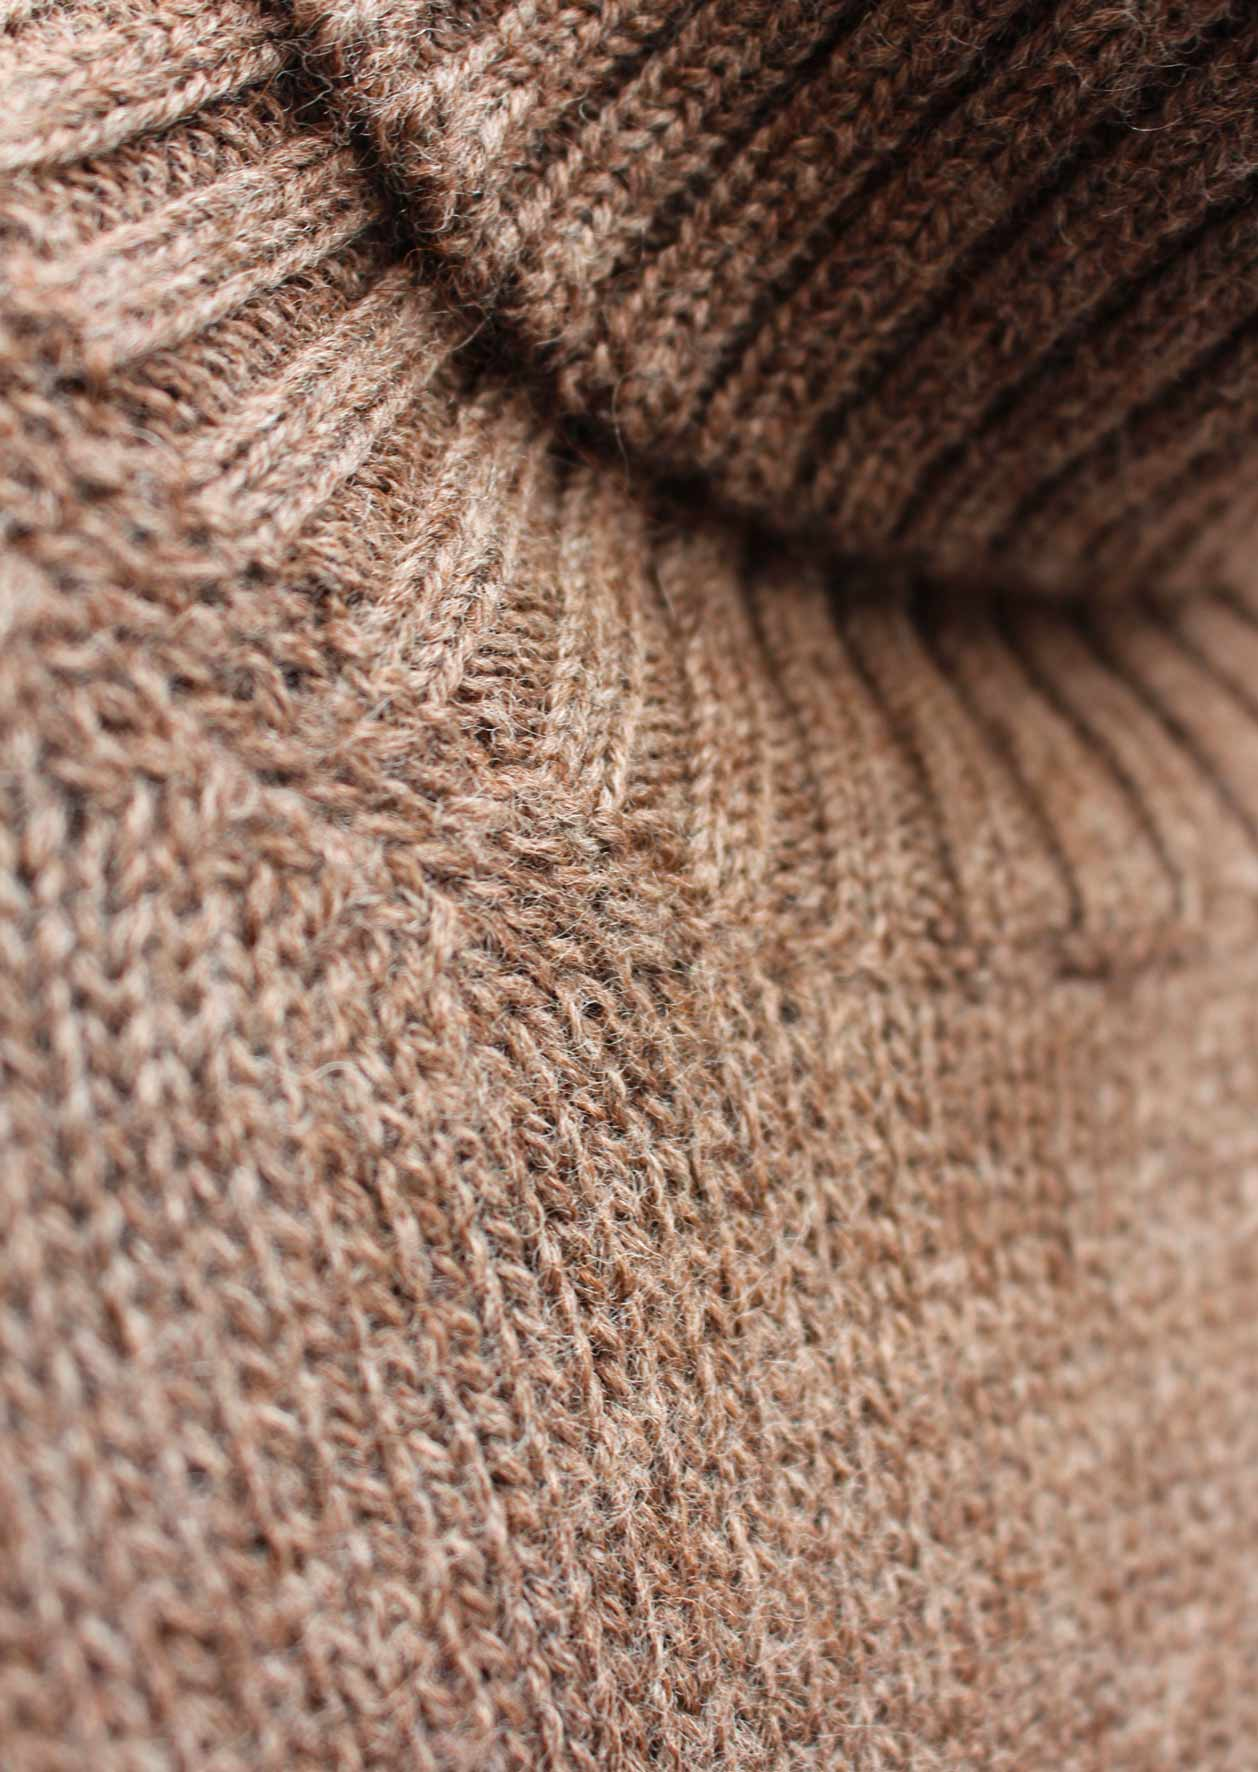 Turtle neck sweater - Peruvian undyed superfine alpaca blend - Natural brown - De Bonne Facture